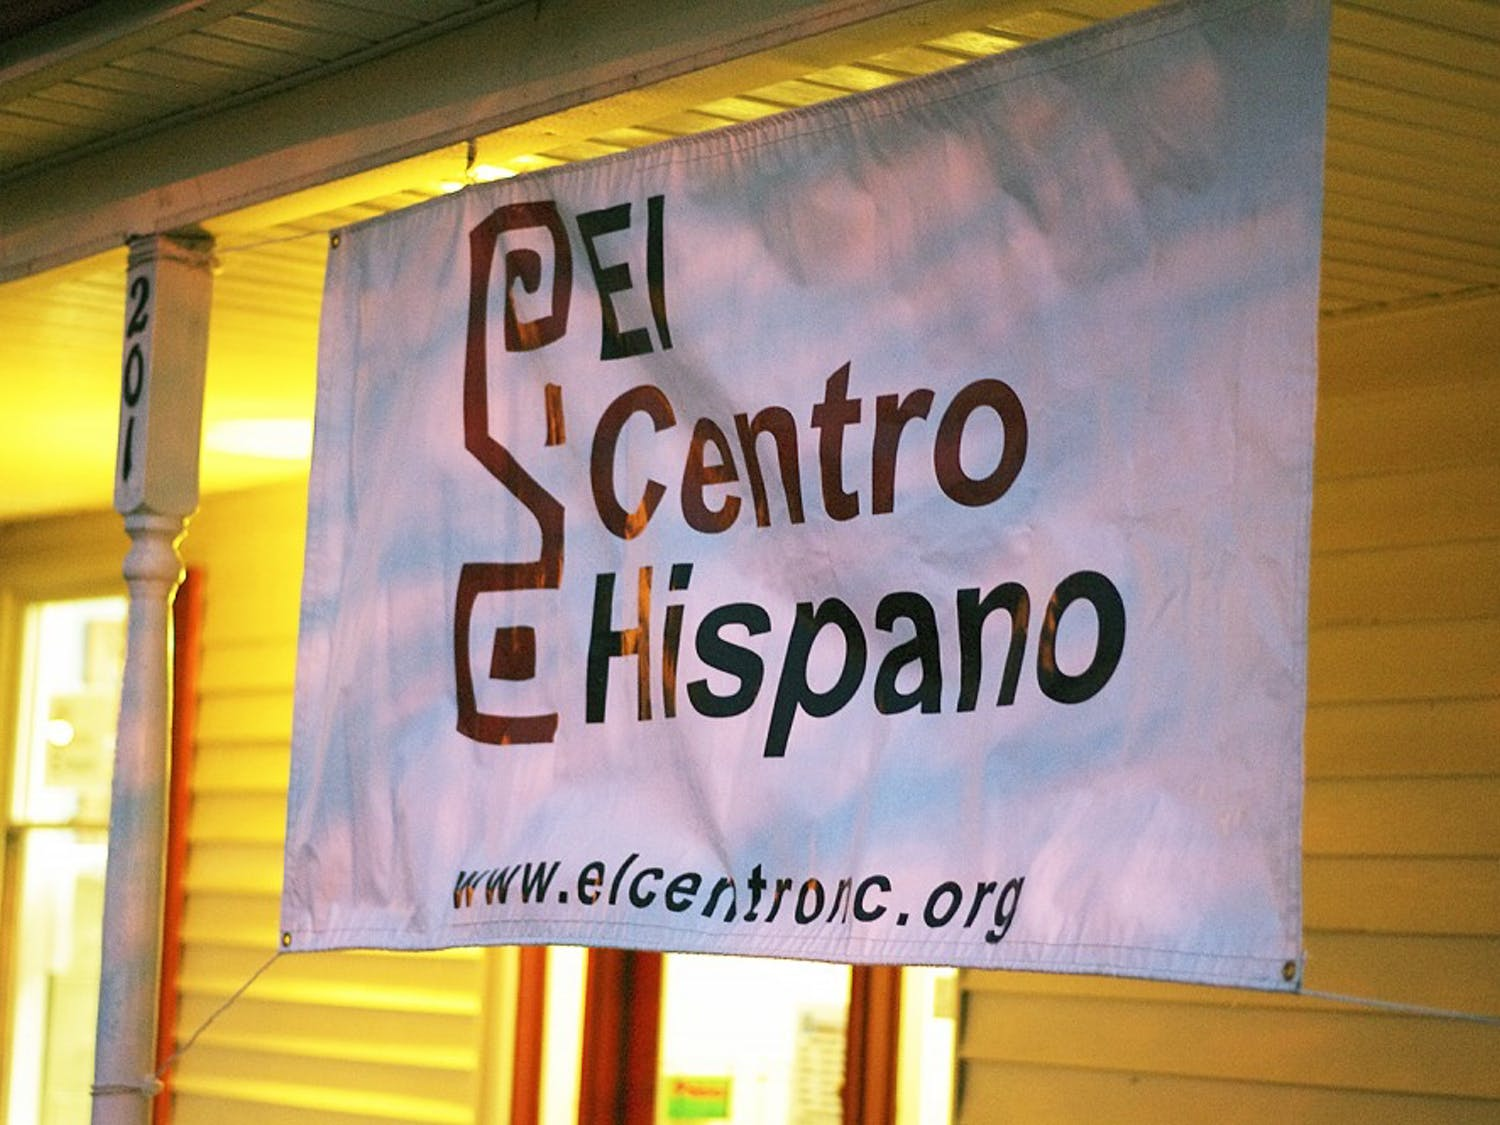 El Centro Hispano had their open house for their new location on W Weaver Street in Carrboro. The new location is more accessible to residents of Chapel Hill and Carrboro, creating a platform for Latinos to better engage with their community.